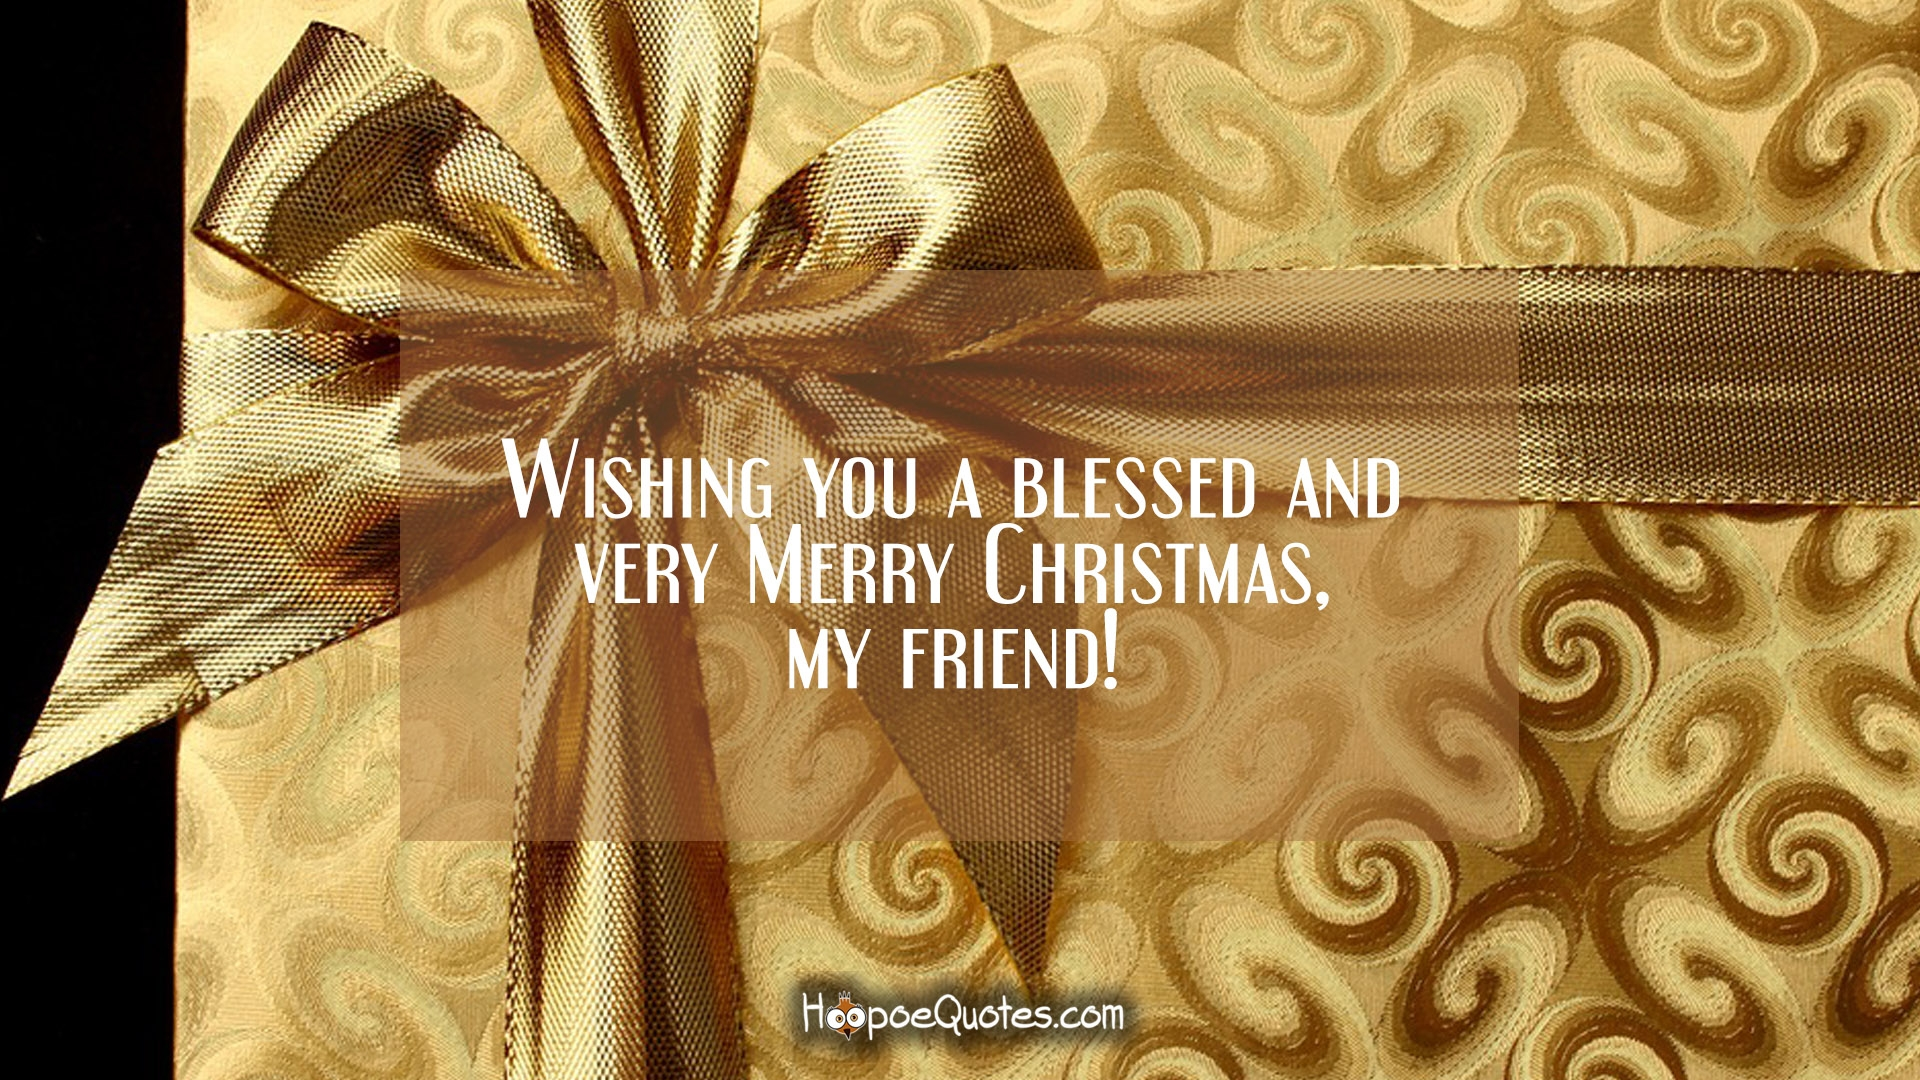 Soulful Wishing You A Blessed Cards Famous Religious Quotes Very Merry My Christian Messages Hoopoequotes Religious Quotes inspiration Religious Christmas Quotes